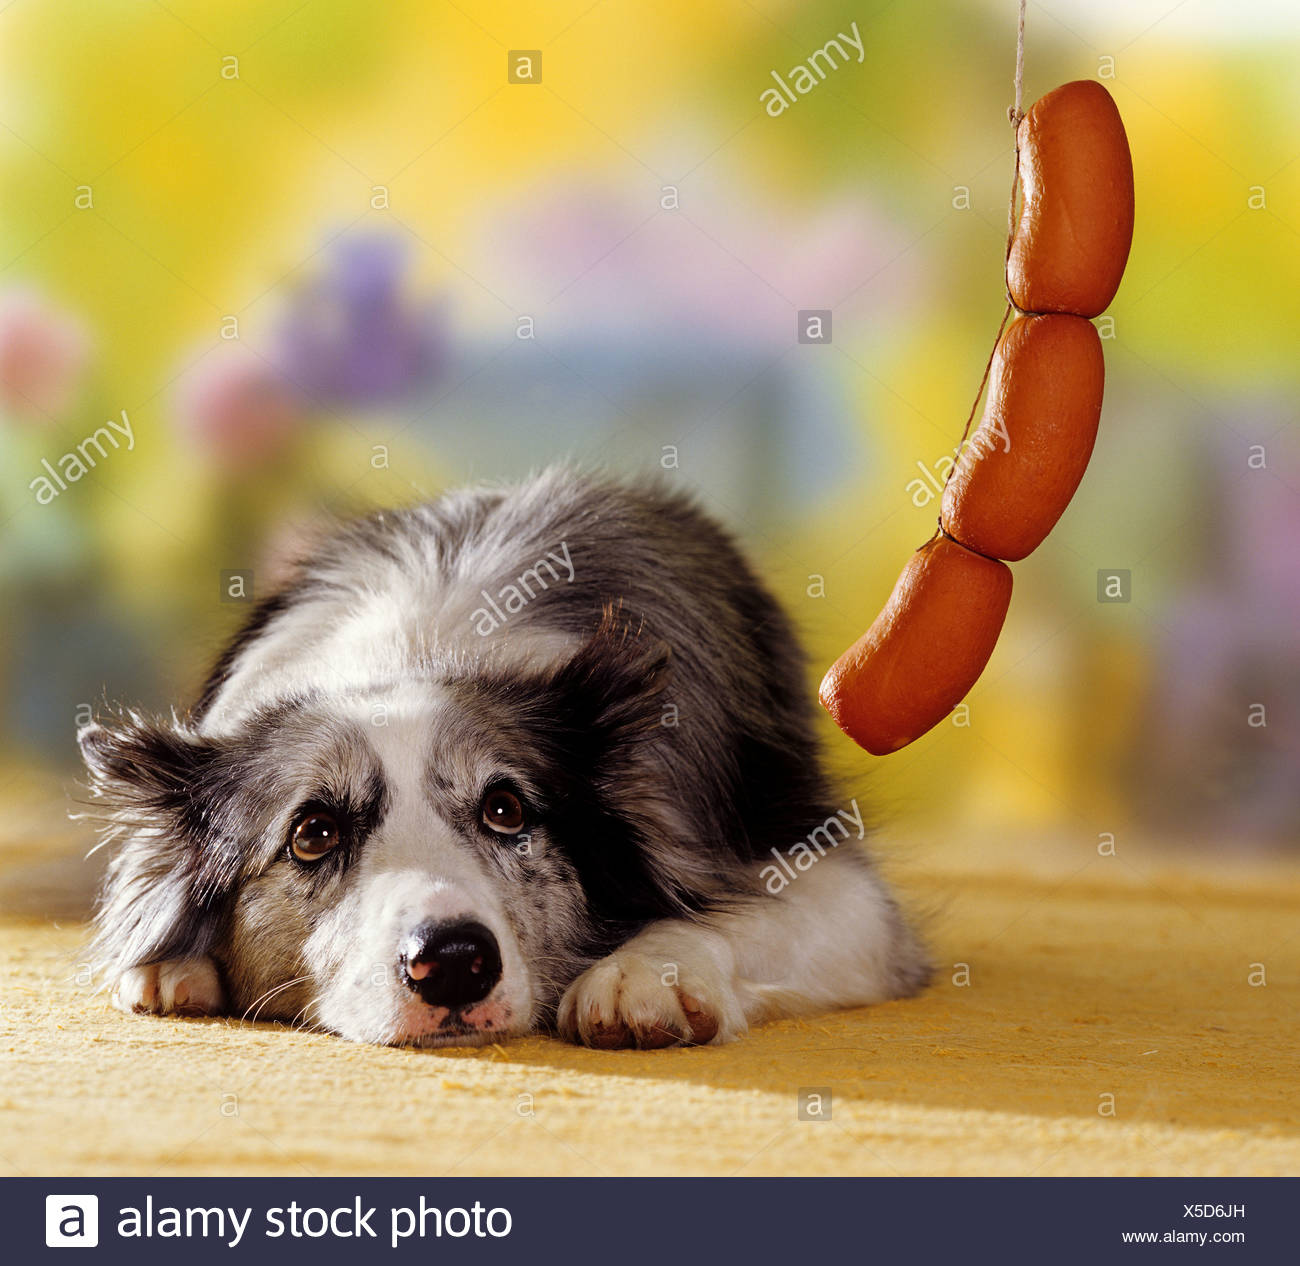 border collie dog looking to sausages - Stock Image